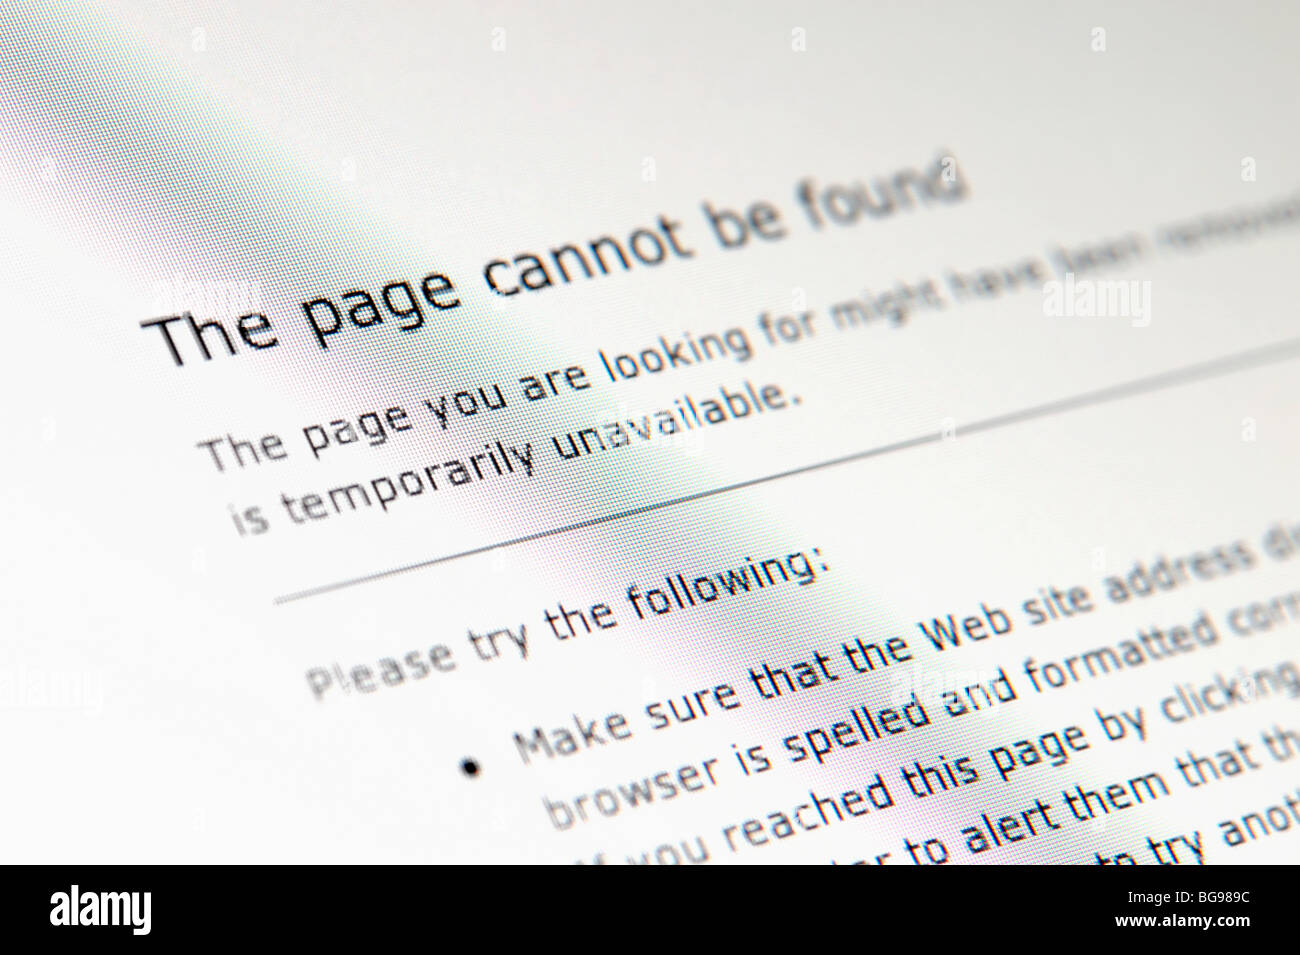 Page cannot be found error - Stock Image